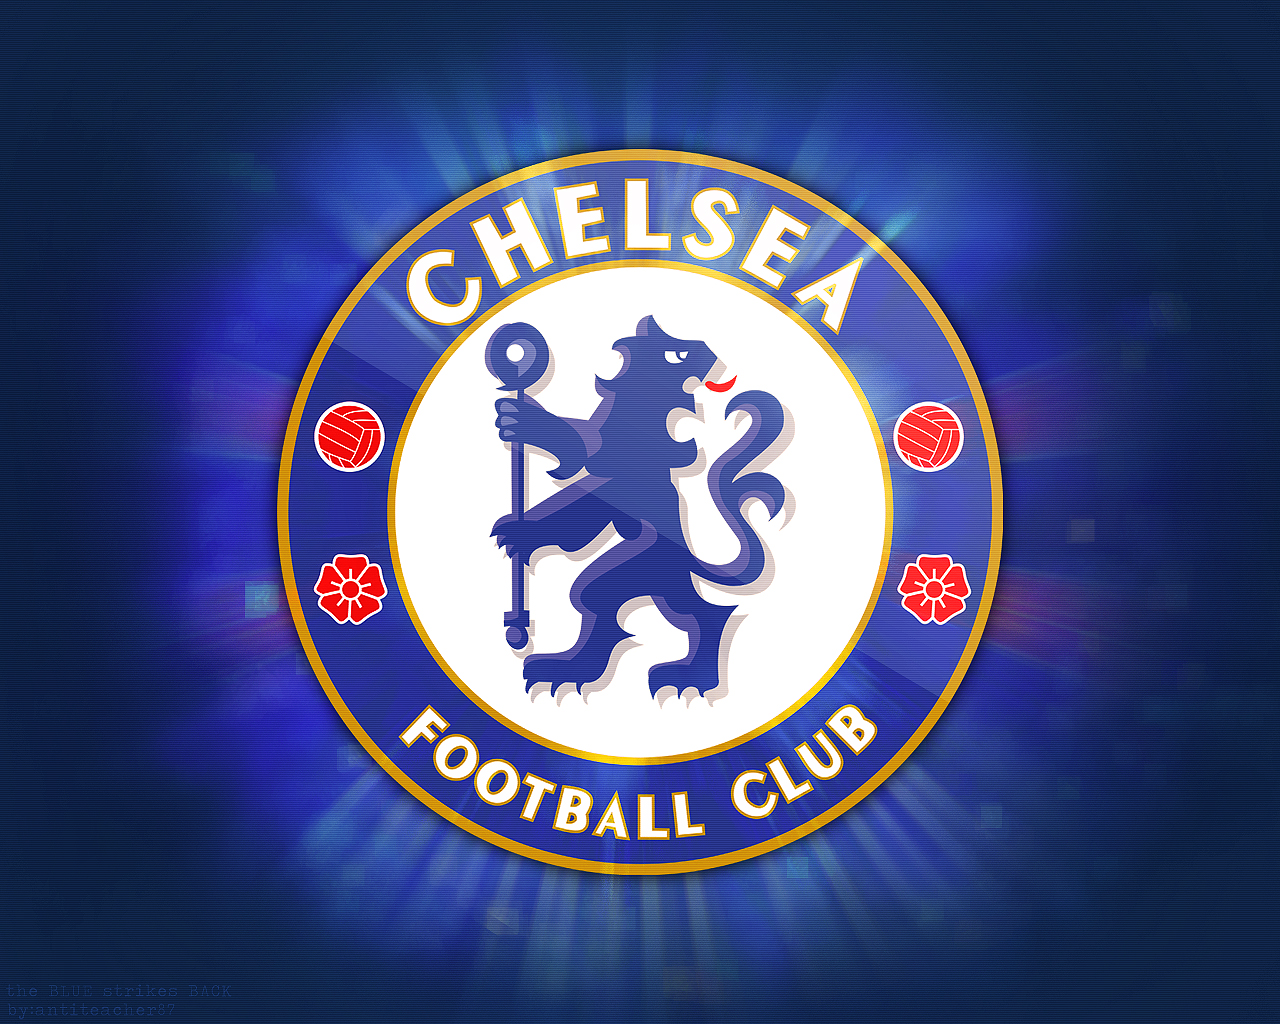 Chelsea FC Memorabilia - 7 signed and game worn jerseys available